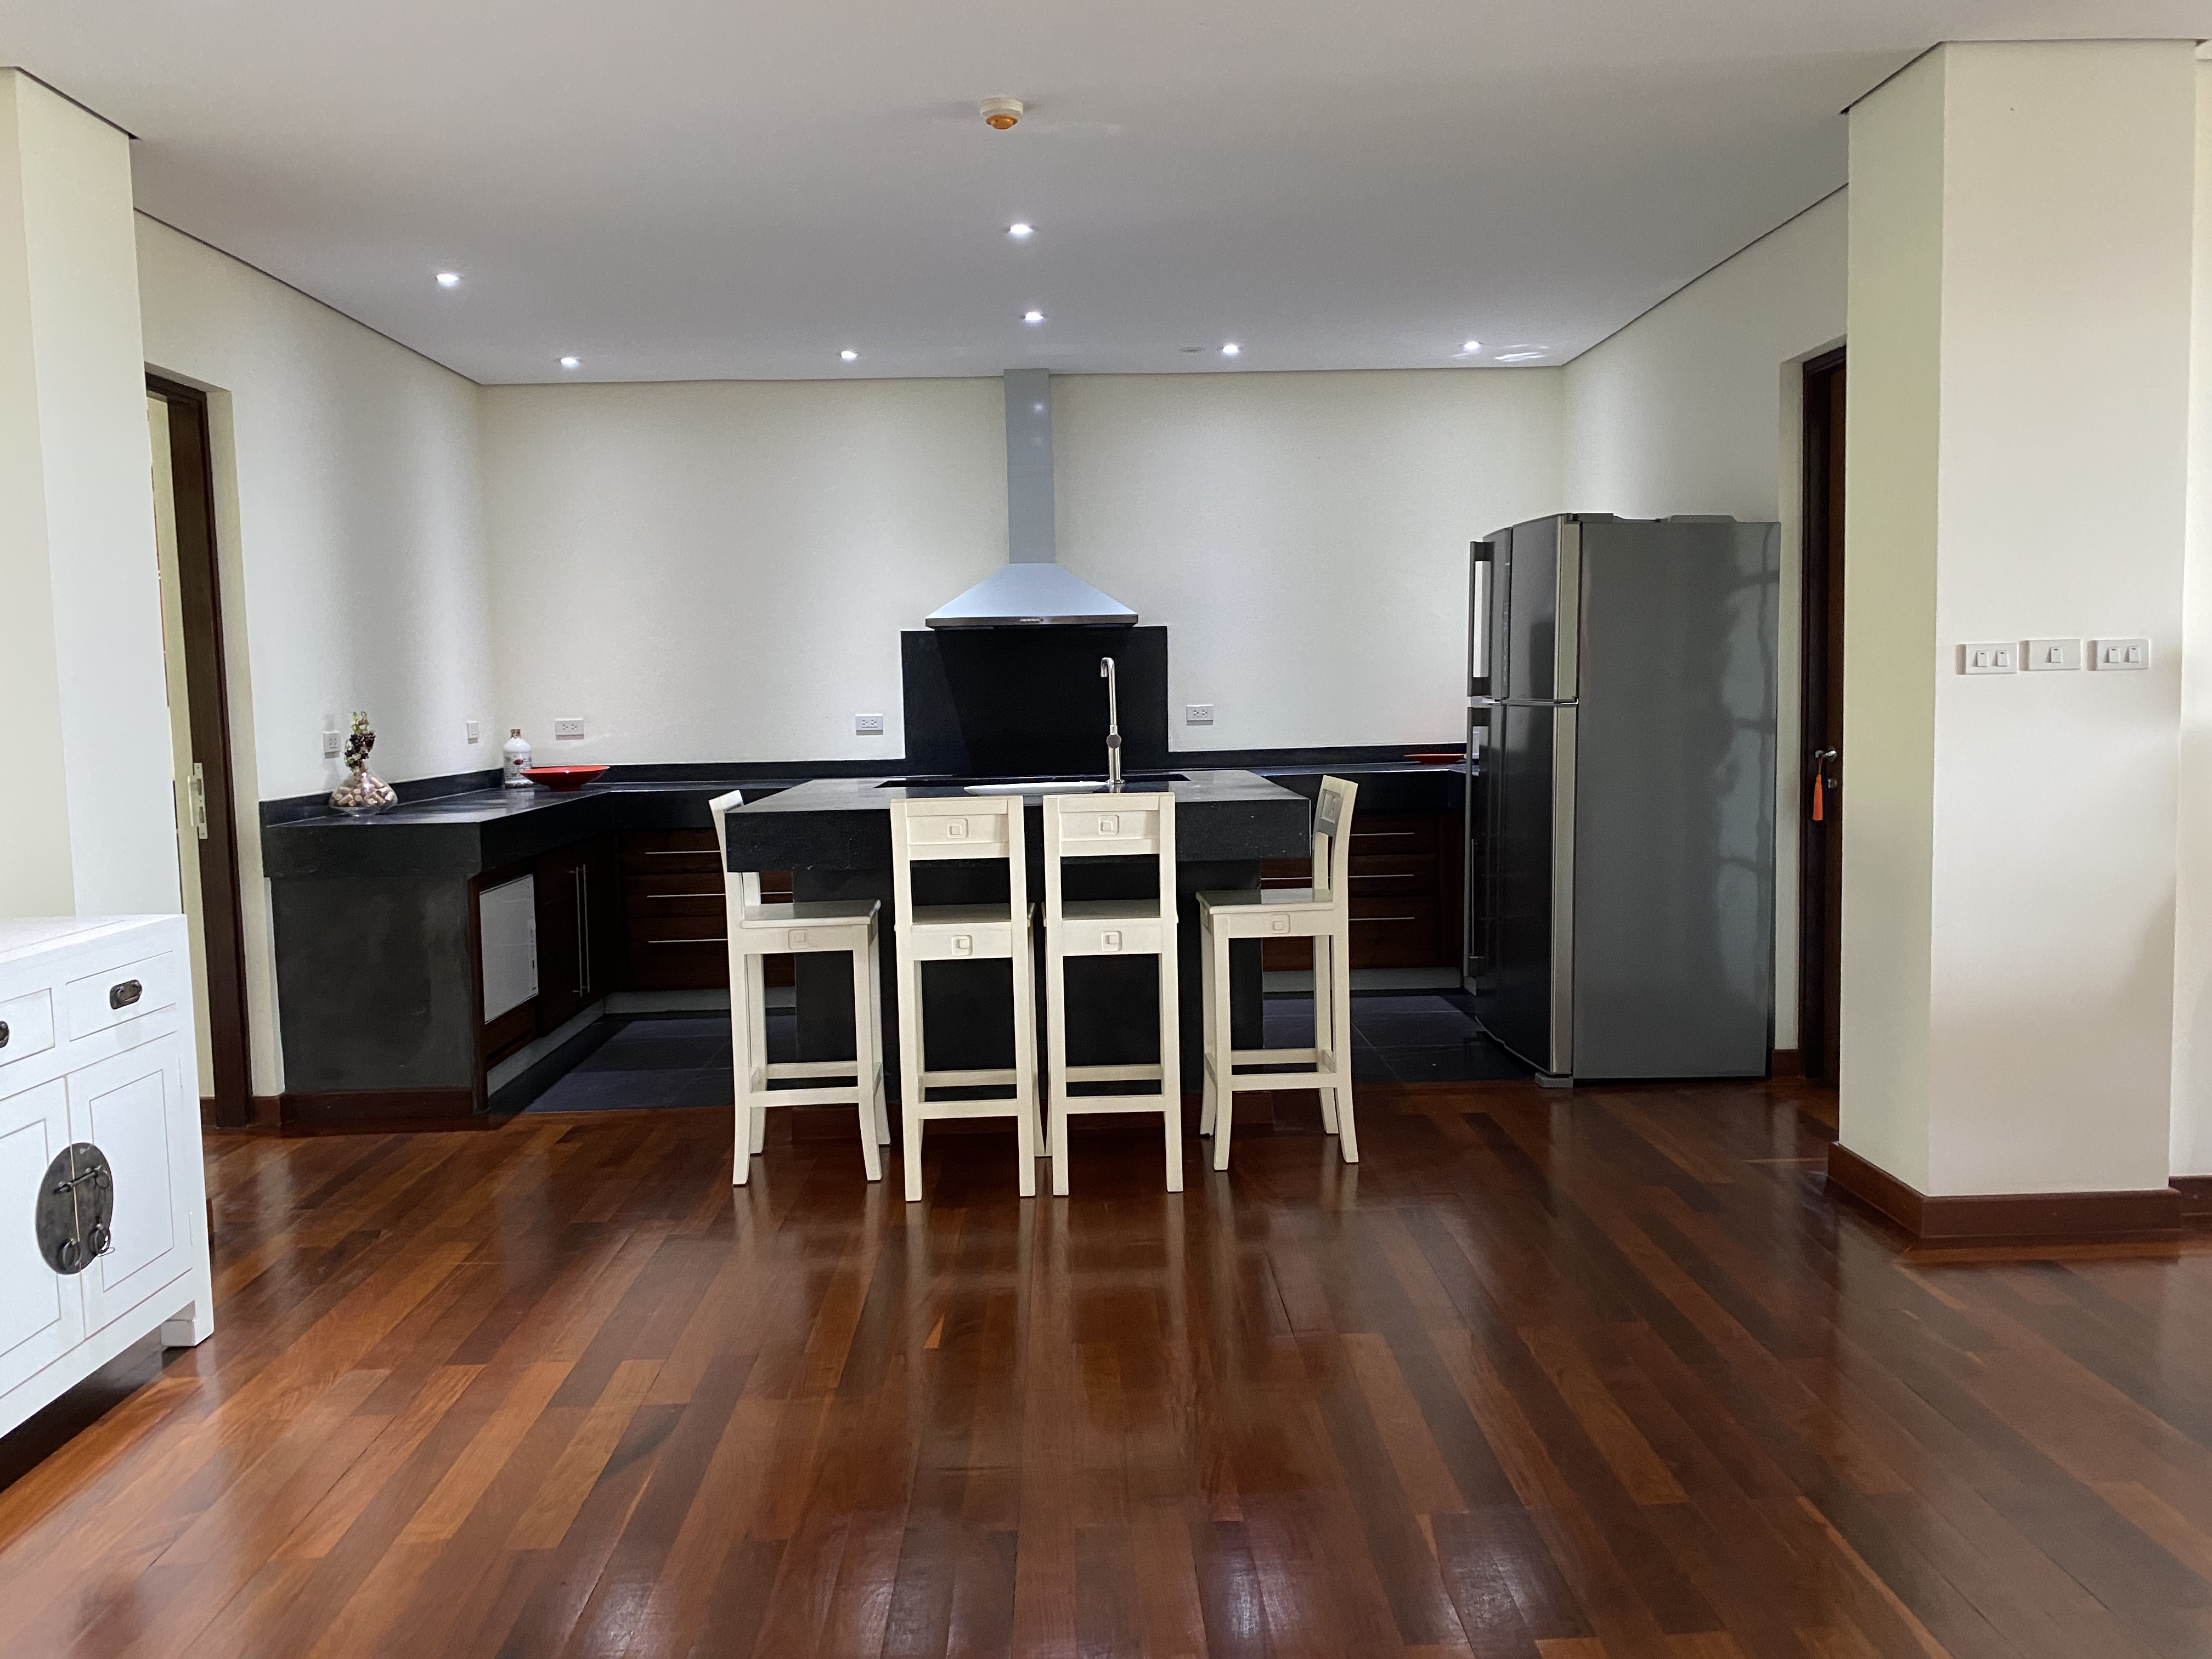 Upscale condominium just minutes from downtown